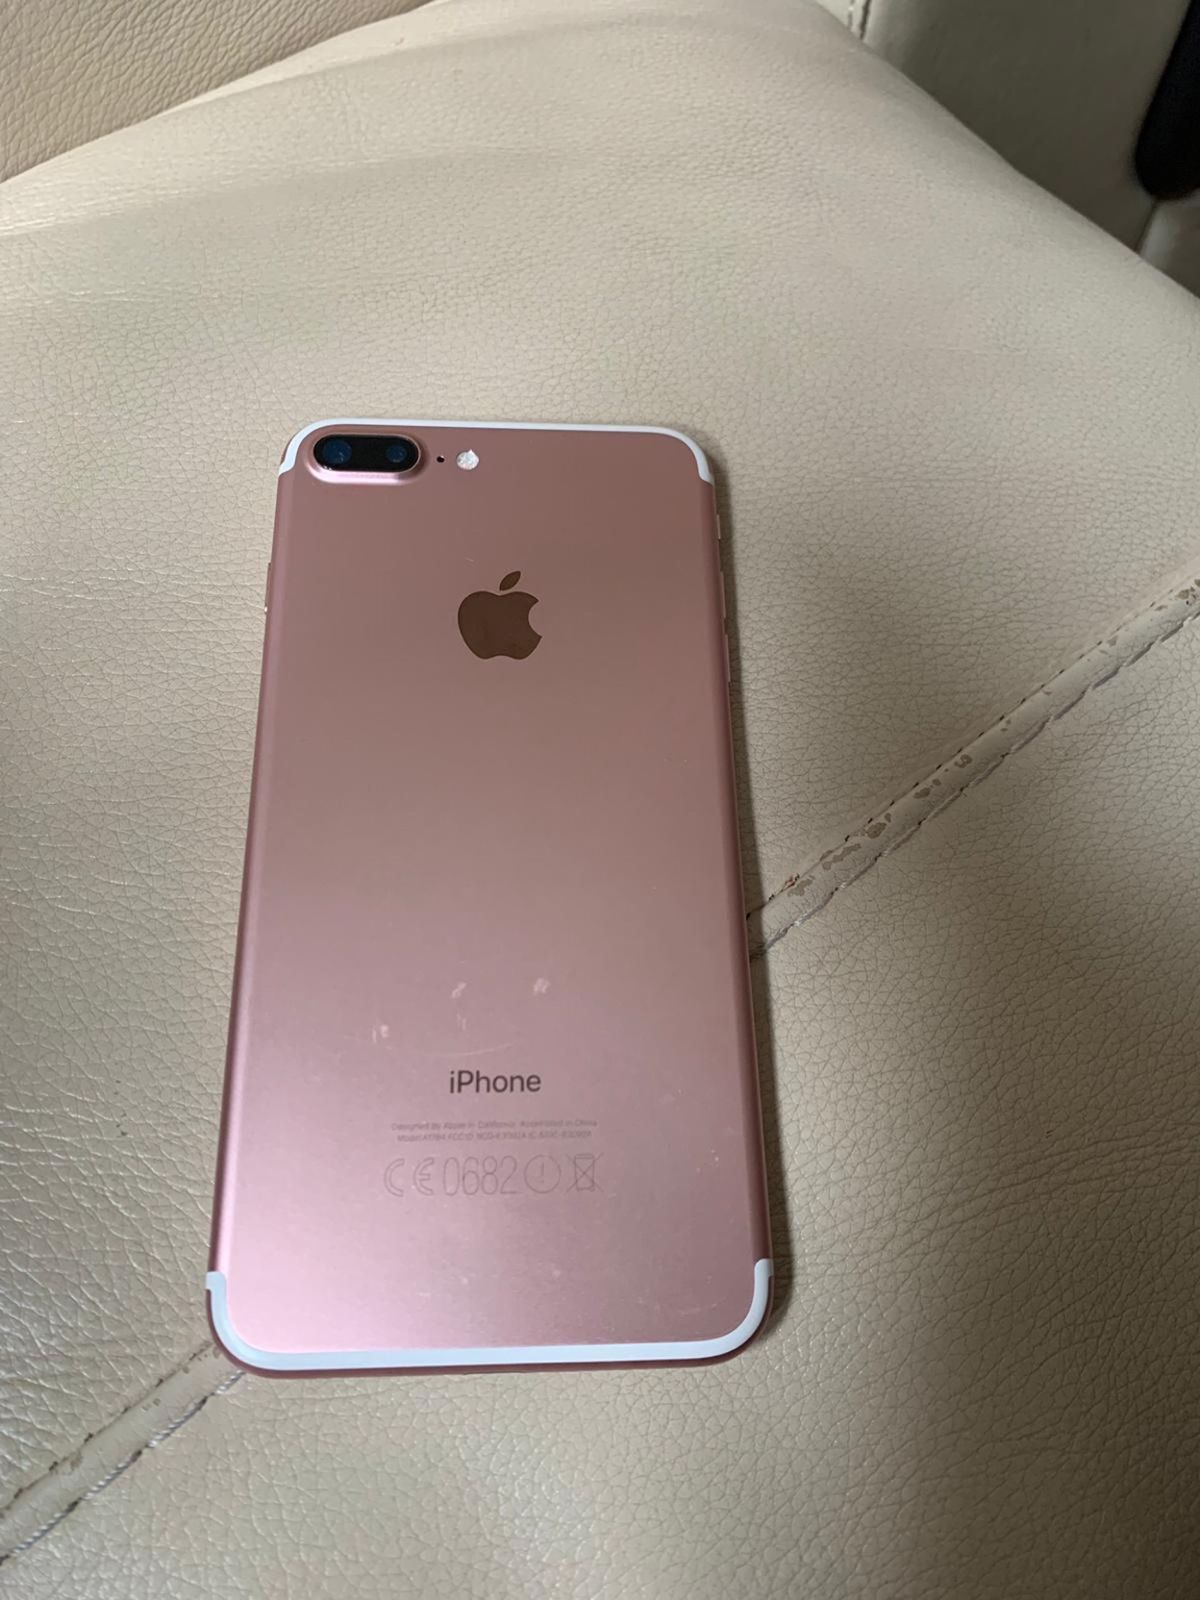 Iphone 7 plus Rose Gold - Used Mobile Phone for sale in Punjab